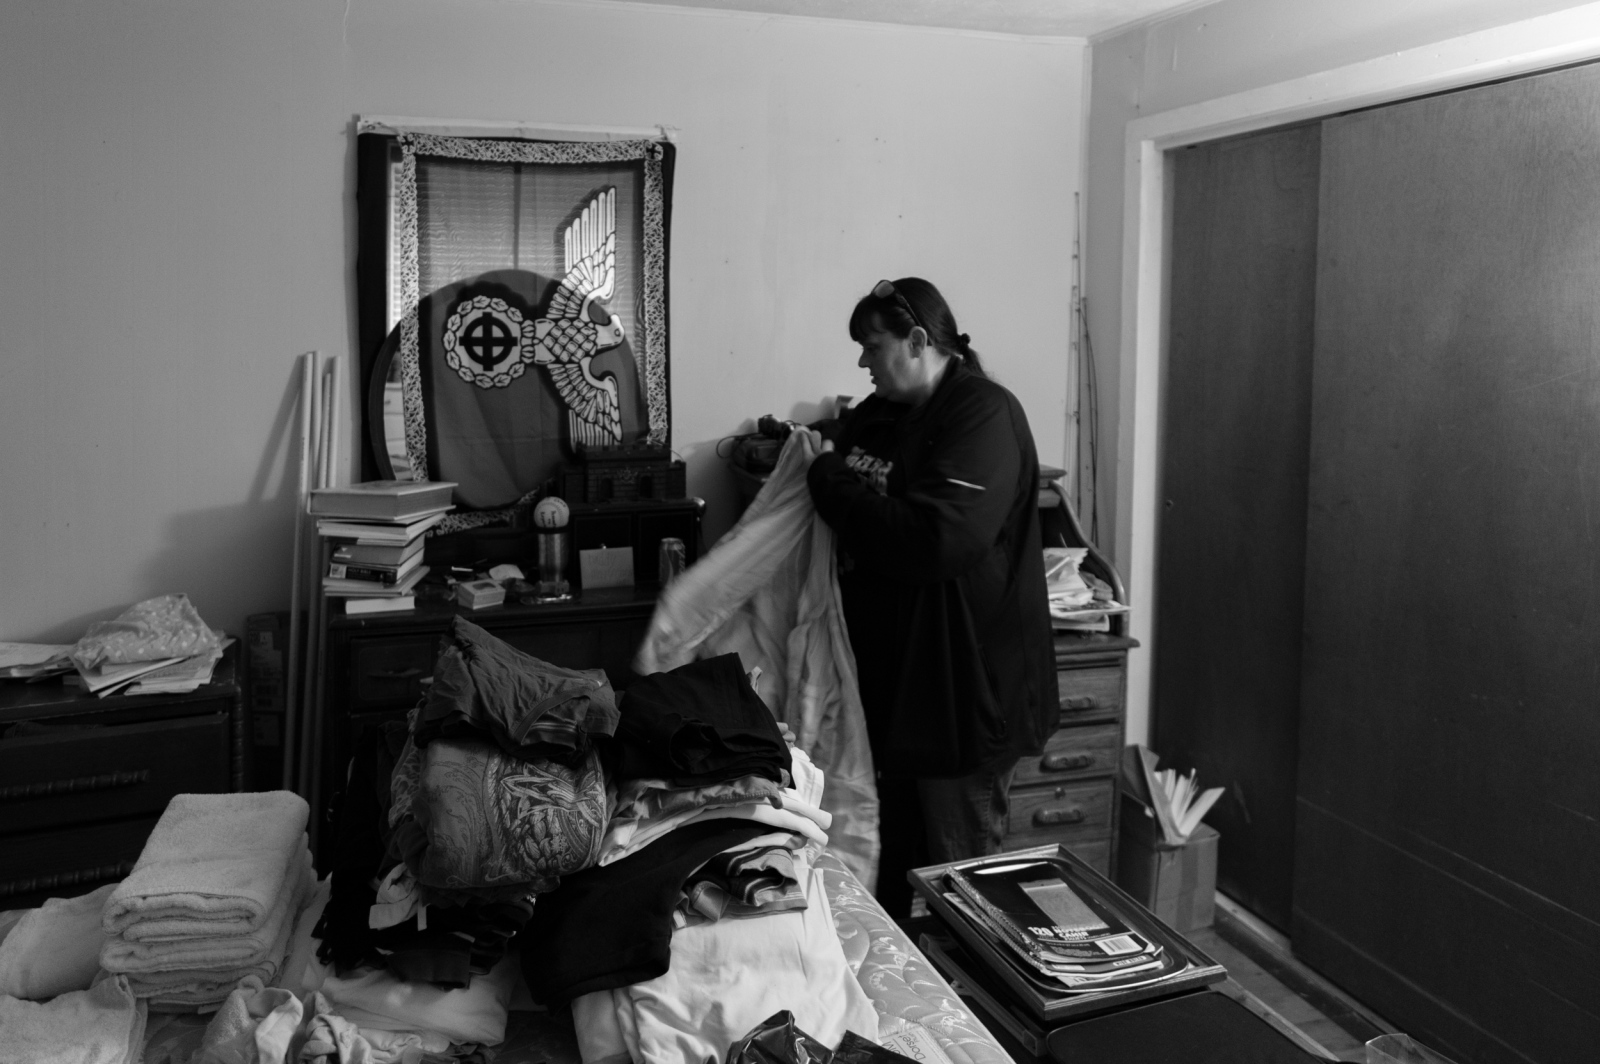 Ohiio.A Klanswoman attempts to get the contents of her home back in order following an FBI raid and search. Authorities were acting on a tip that her husband, the leader of a southern-based Klan realm who was previously arrested on an illegal weapons charge had posed with a firearm in a recent Facebook post (it is unlawful for a convicted felon to be in contact with a firearm). The couple believes that the reason for the raid was exaggerated and the actual intent was to commandeer a list of their members. The firearm was legally registered to his wife.